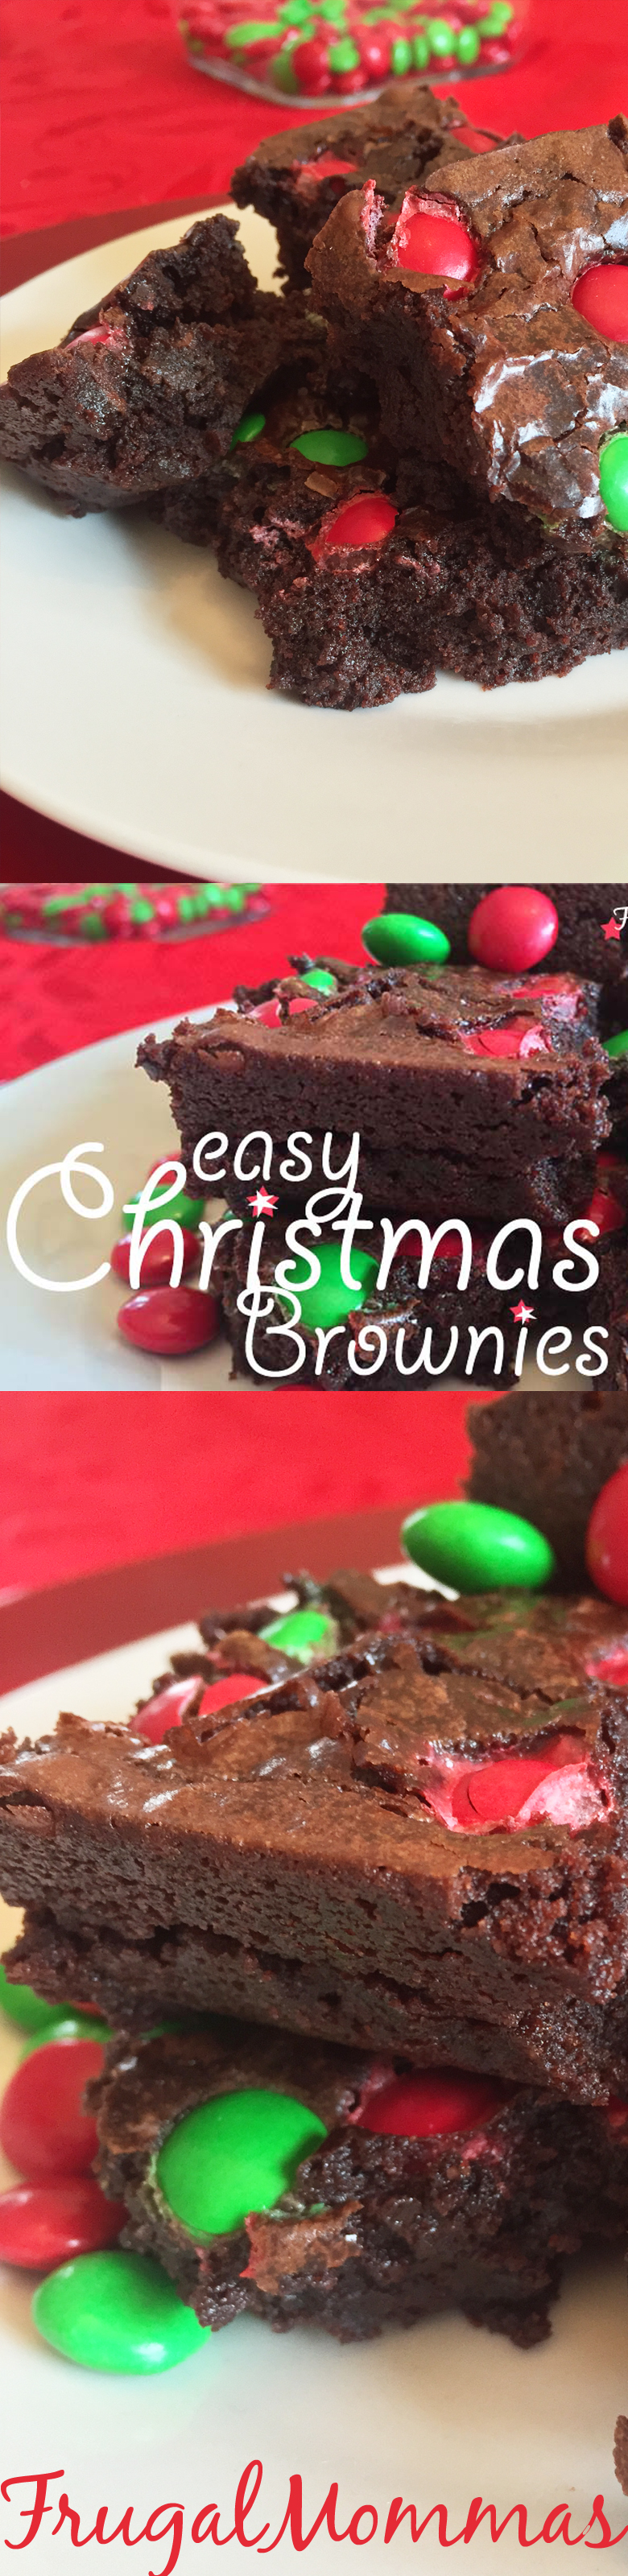 easy brownies with M&M's®